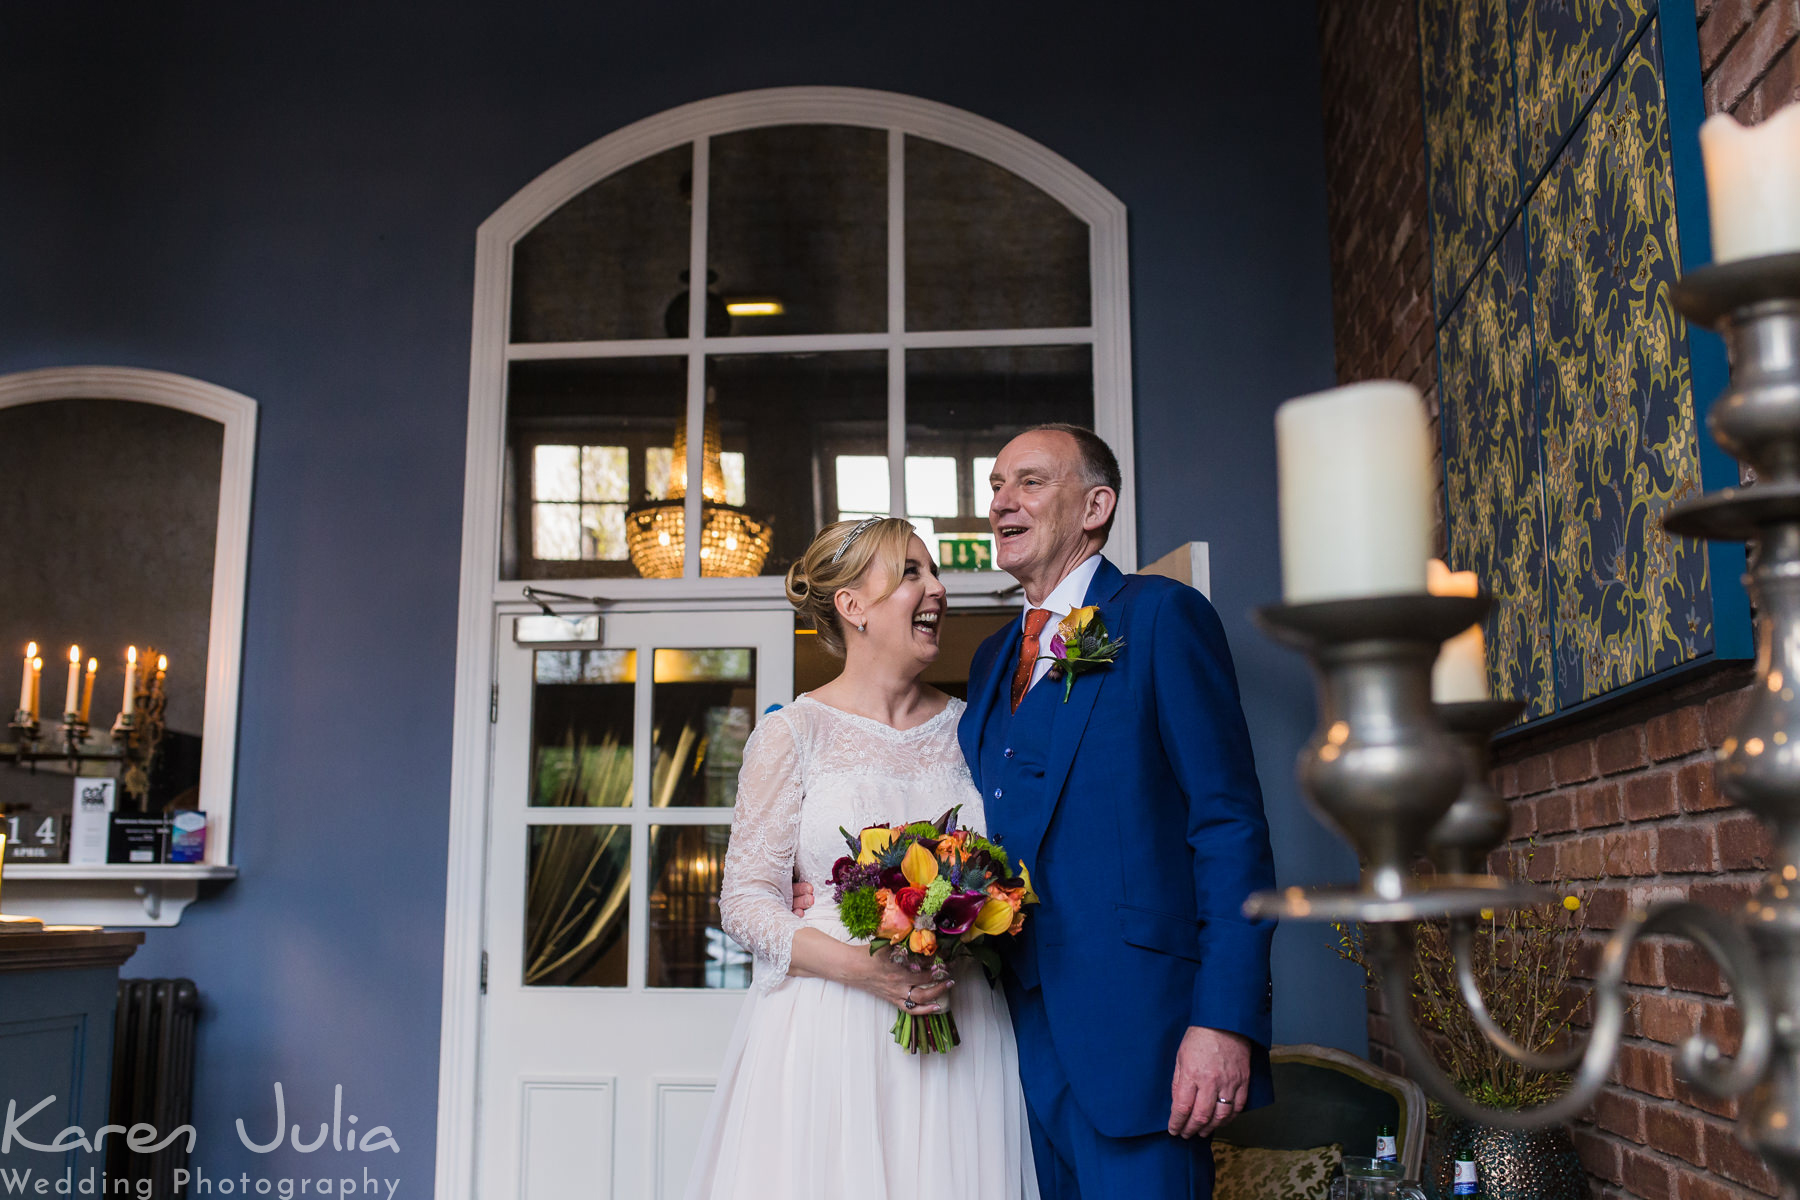 bride and groom portrait in reception at their Rustic Great John Street Hotel Wedding